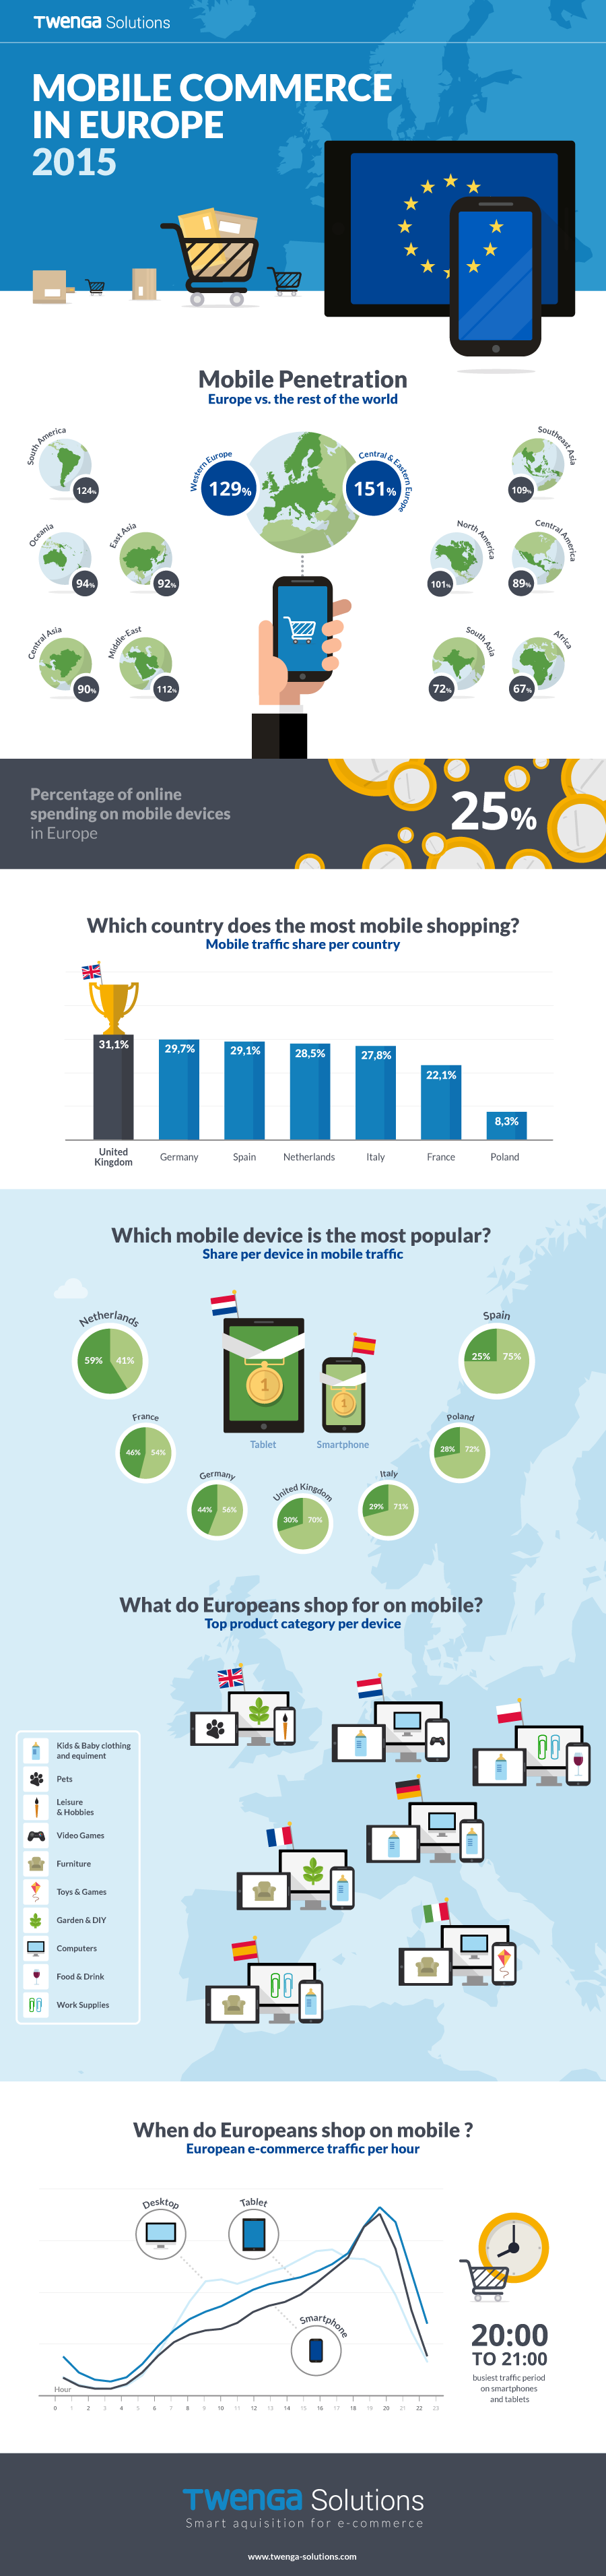 twenga-infografia-mobile-commerce-europe-2015-blog-hostalia-hosting